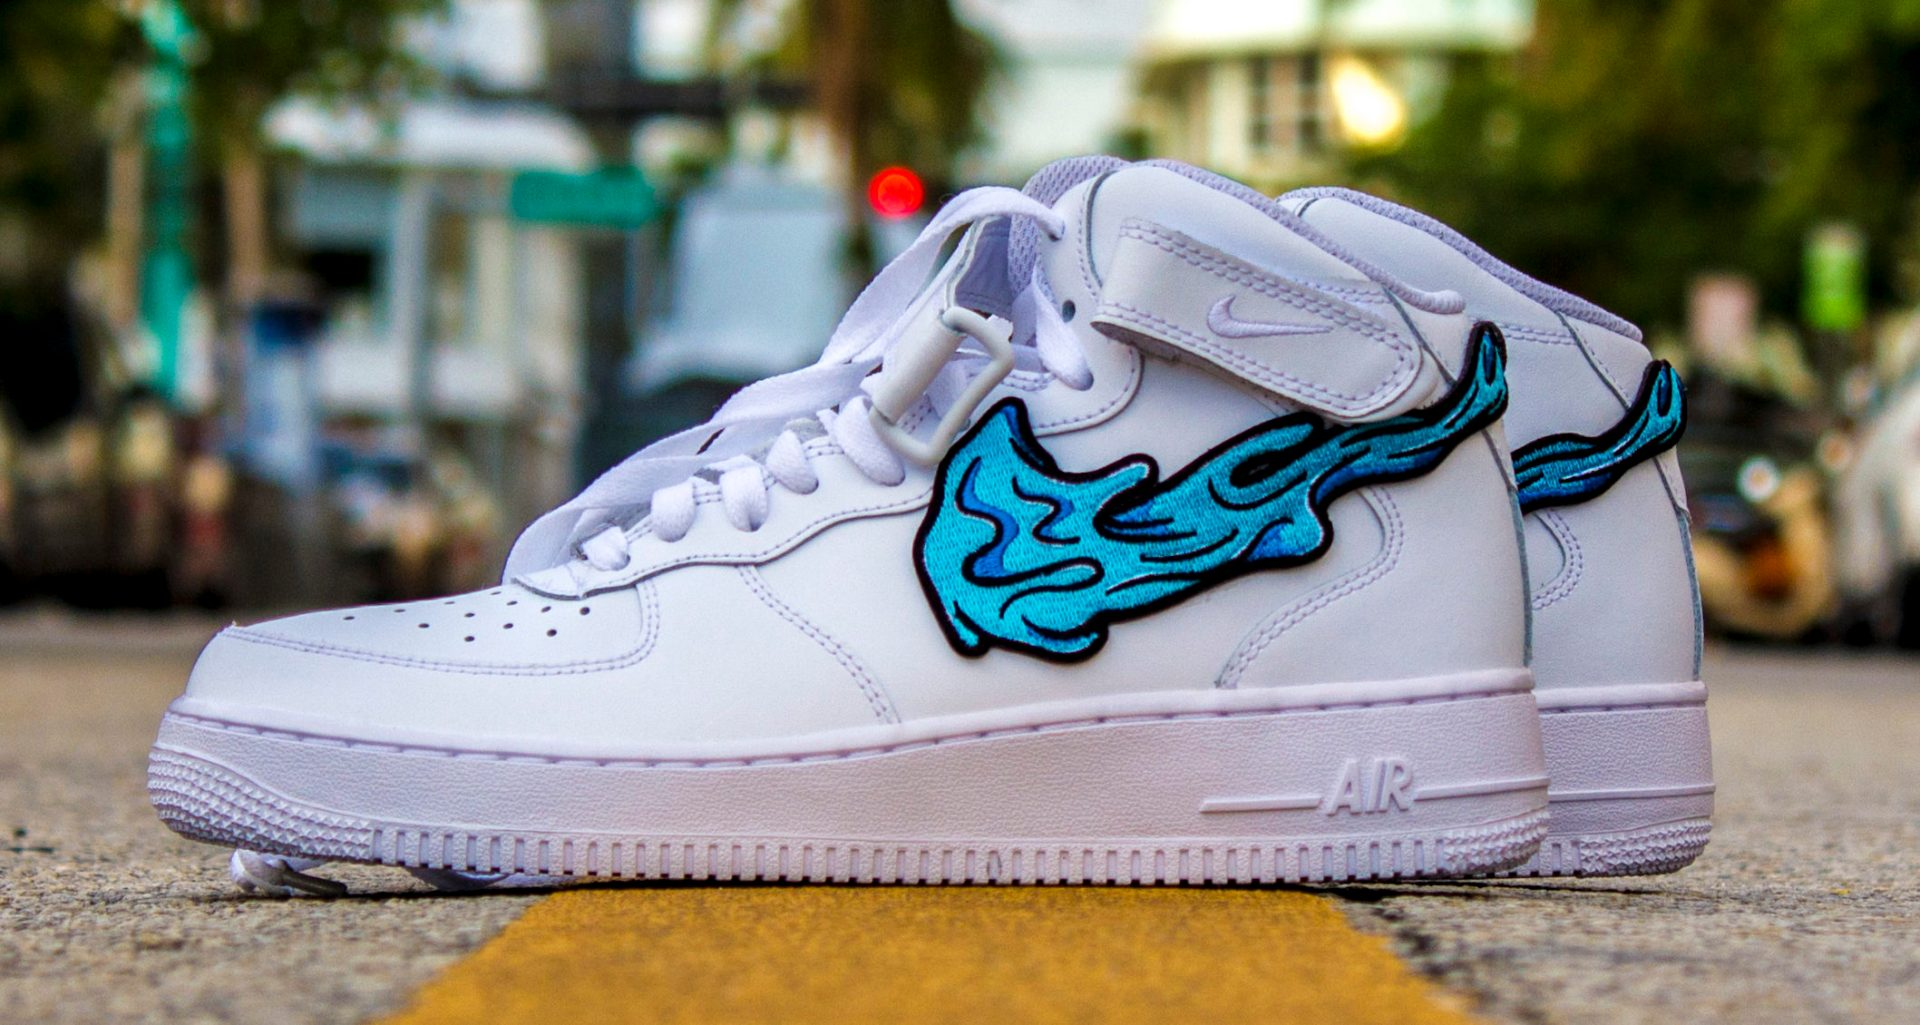 competitive price 16294 2aad2 Custom Air Force 1 Gets Dripped in Affordable Art